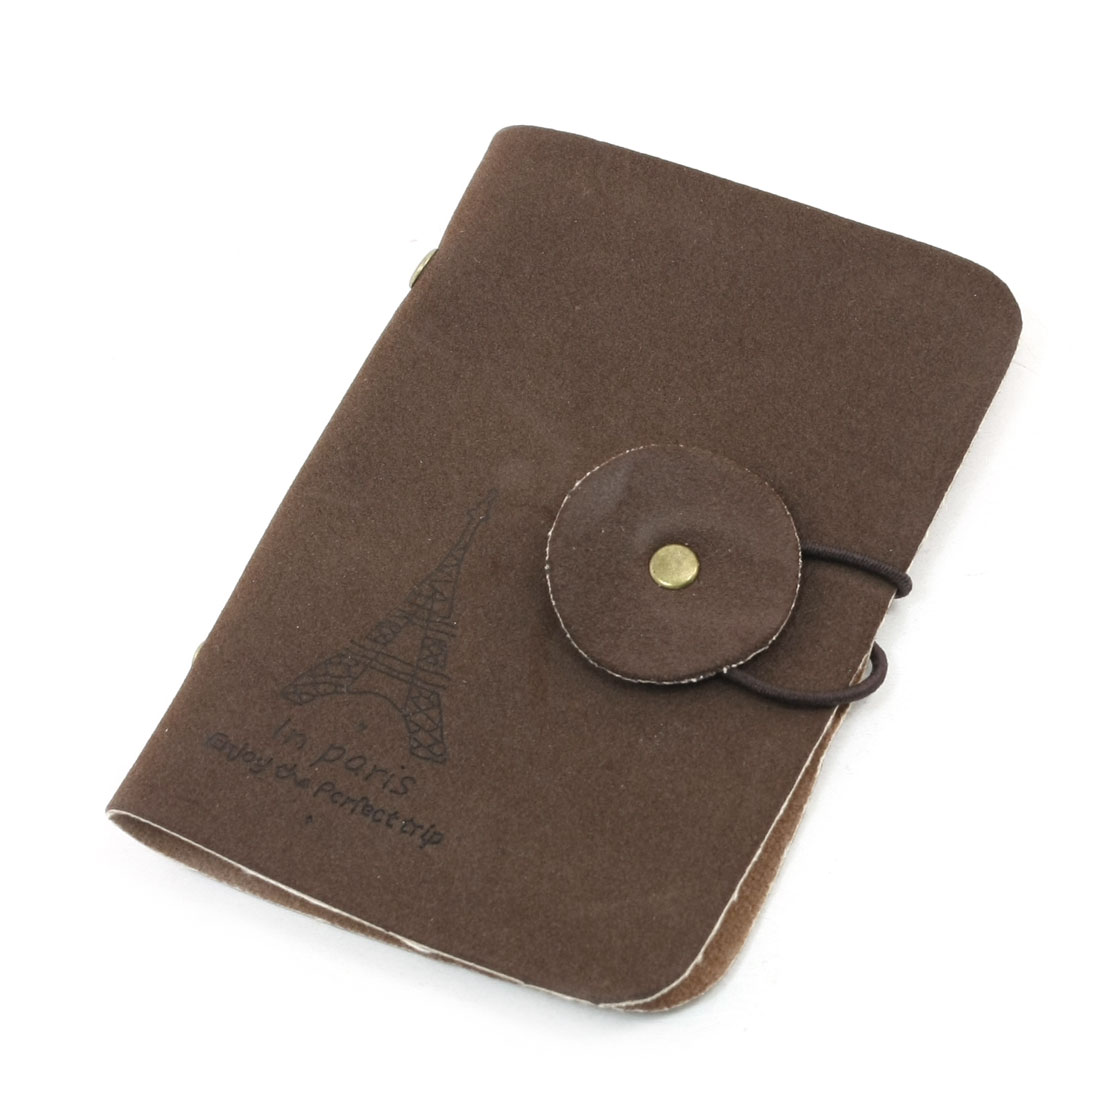 Tower Pattern 20 Capacity Business ID Card Case Pouch Dark Brown